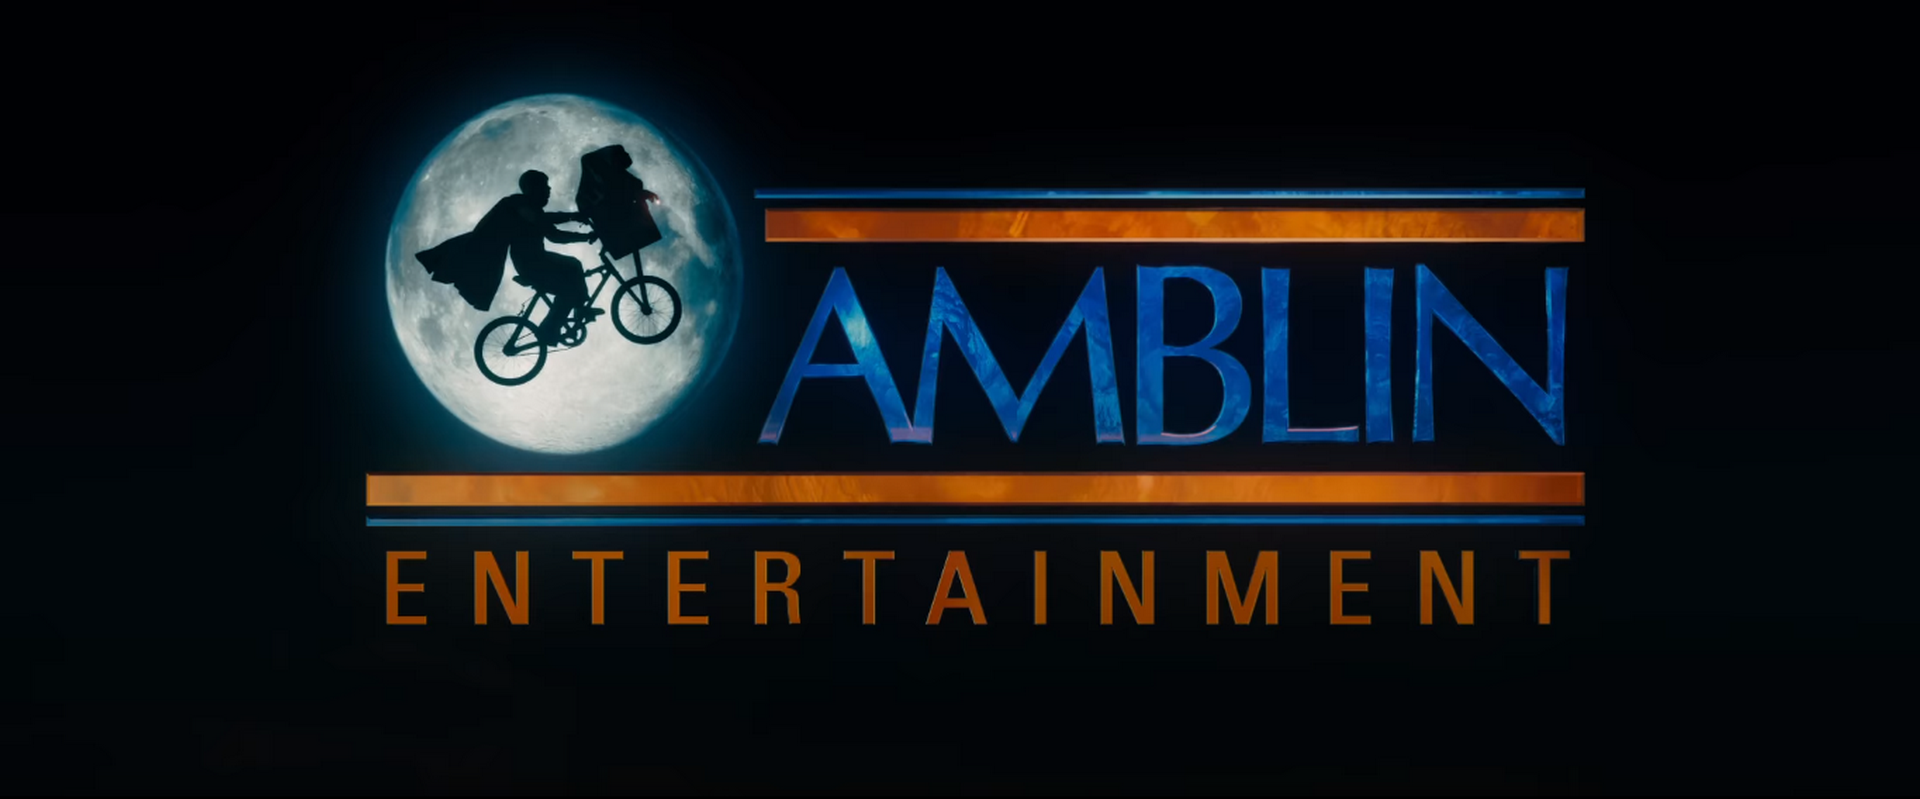 Amblin Entertainment Disney Wiki Fandom Powered By Wikia